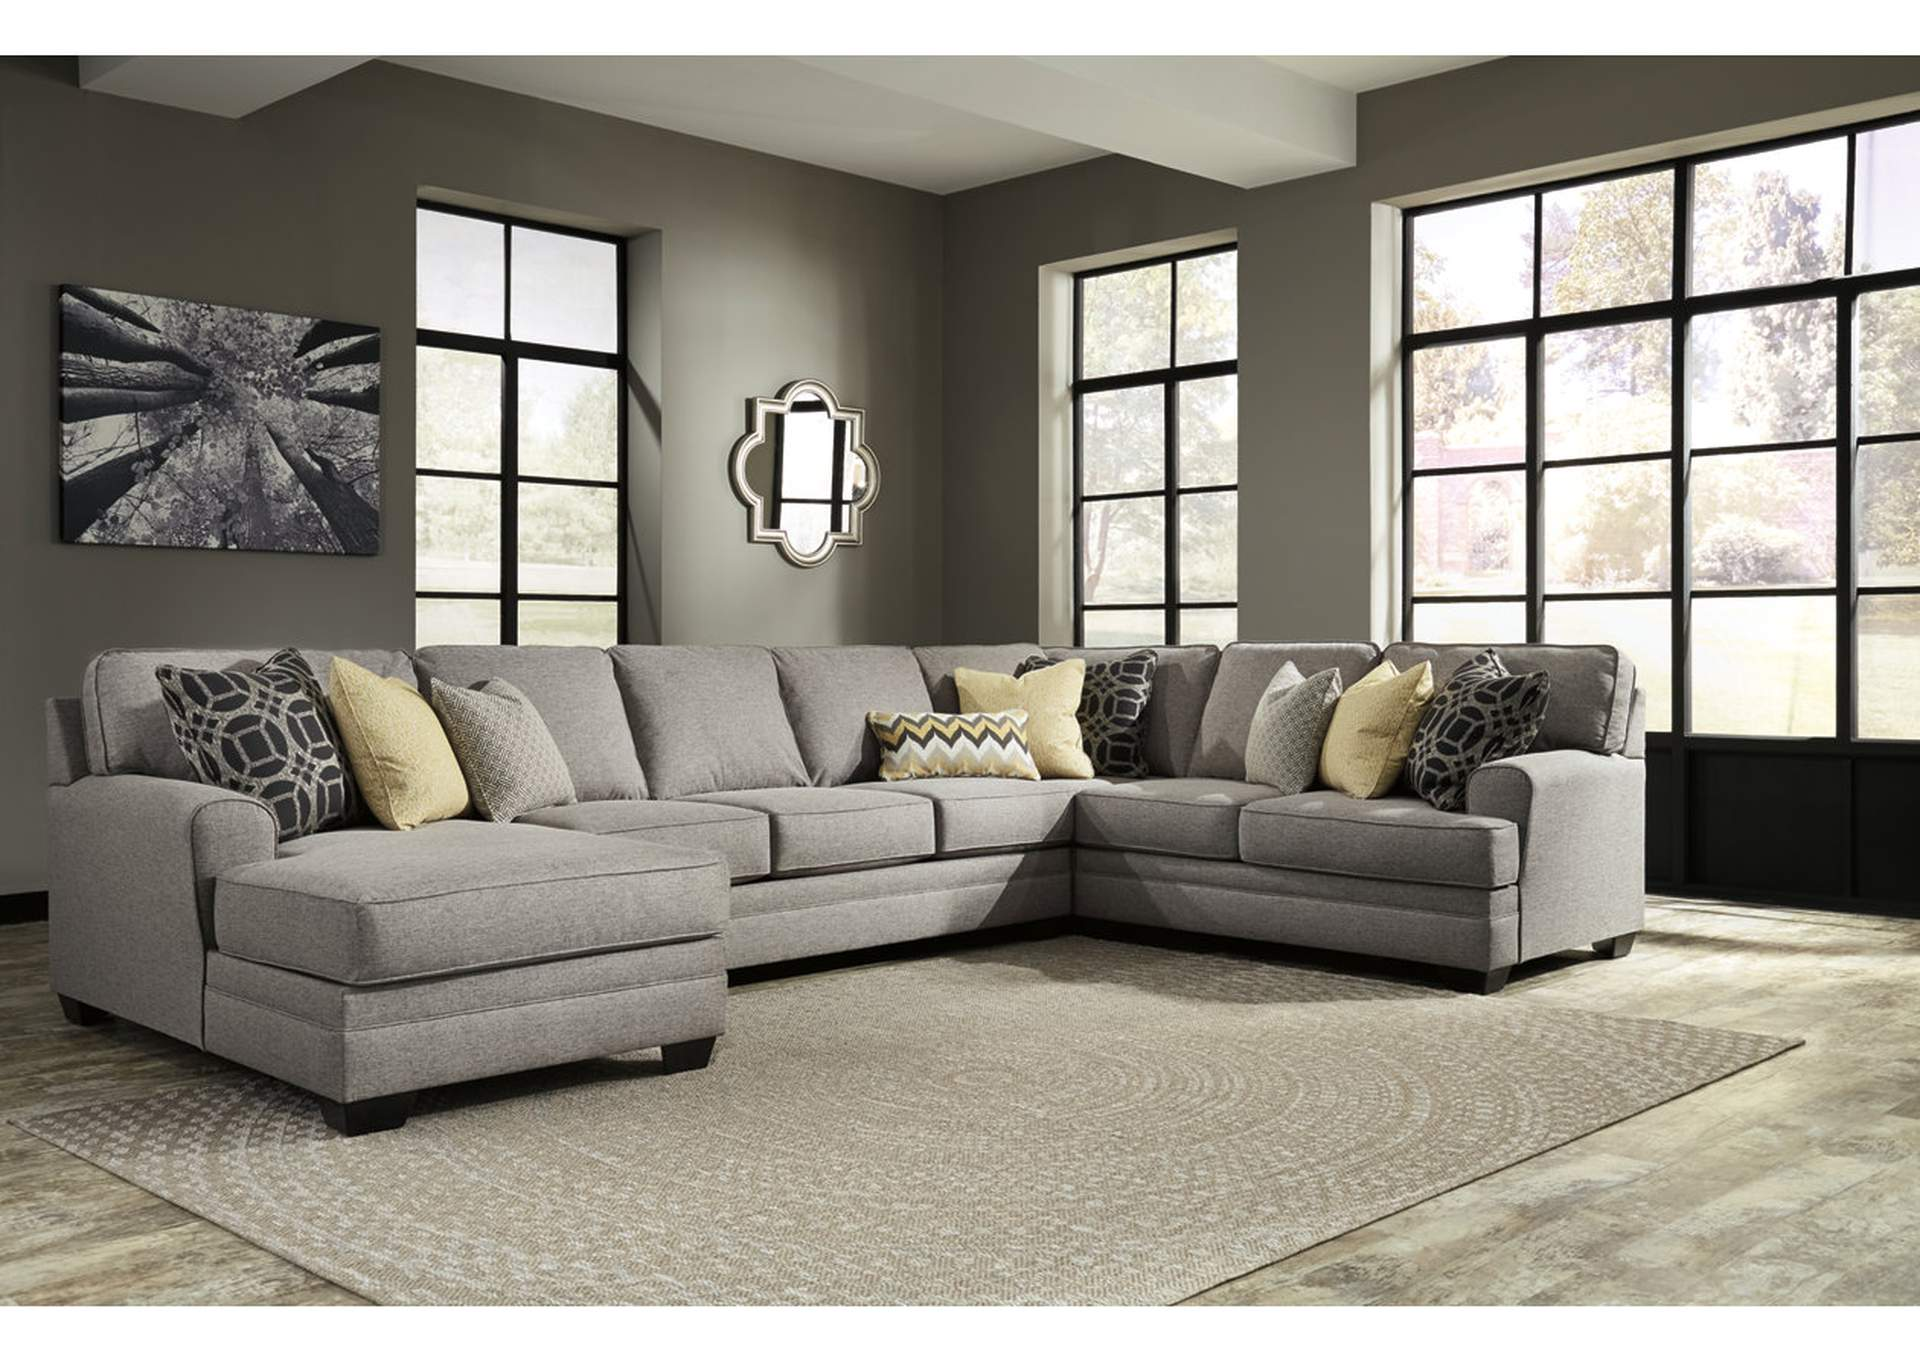 sleeper sectional sofa reclining loveseat white 3 seater ivan smith cresson pewter left facing corner chaise ...